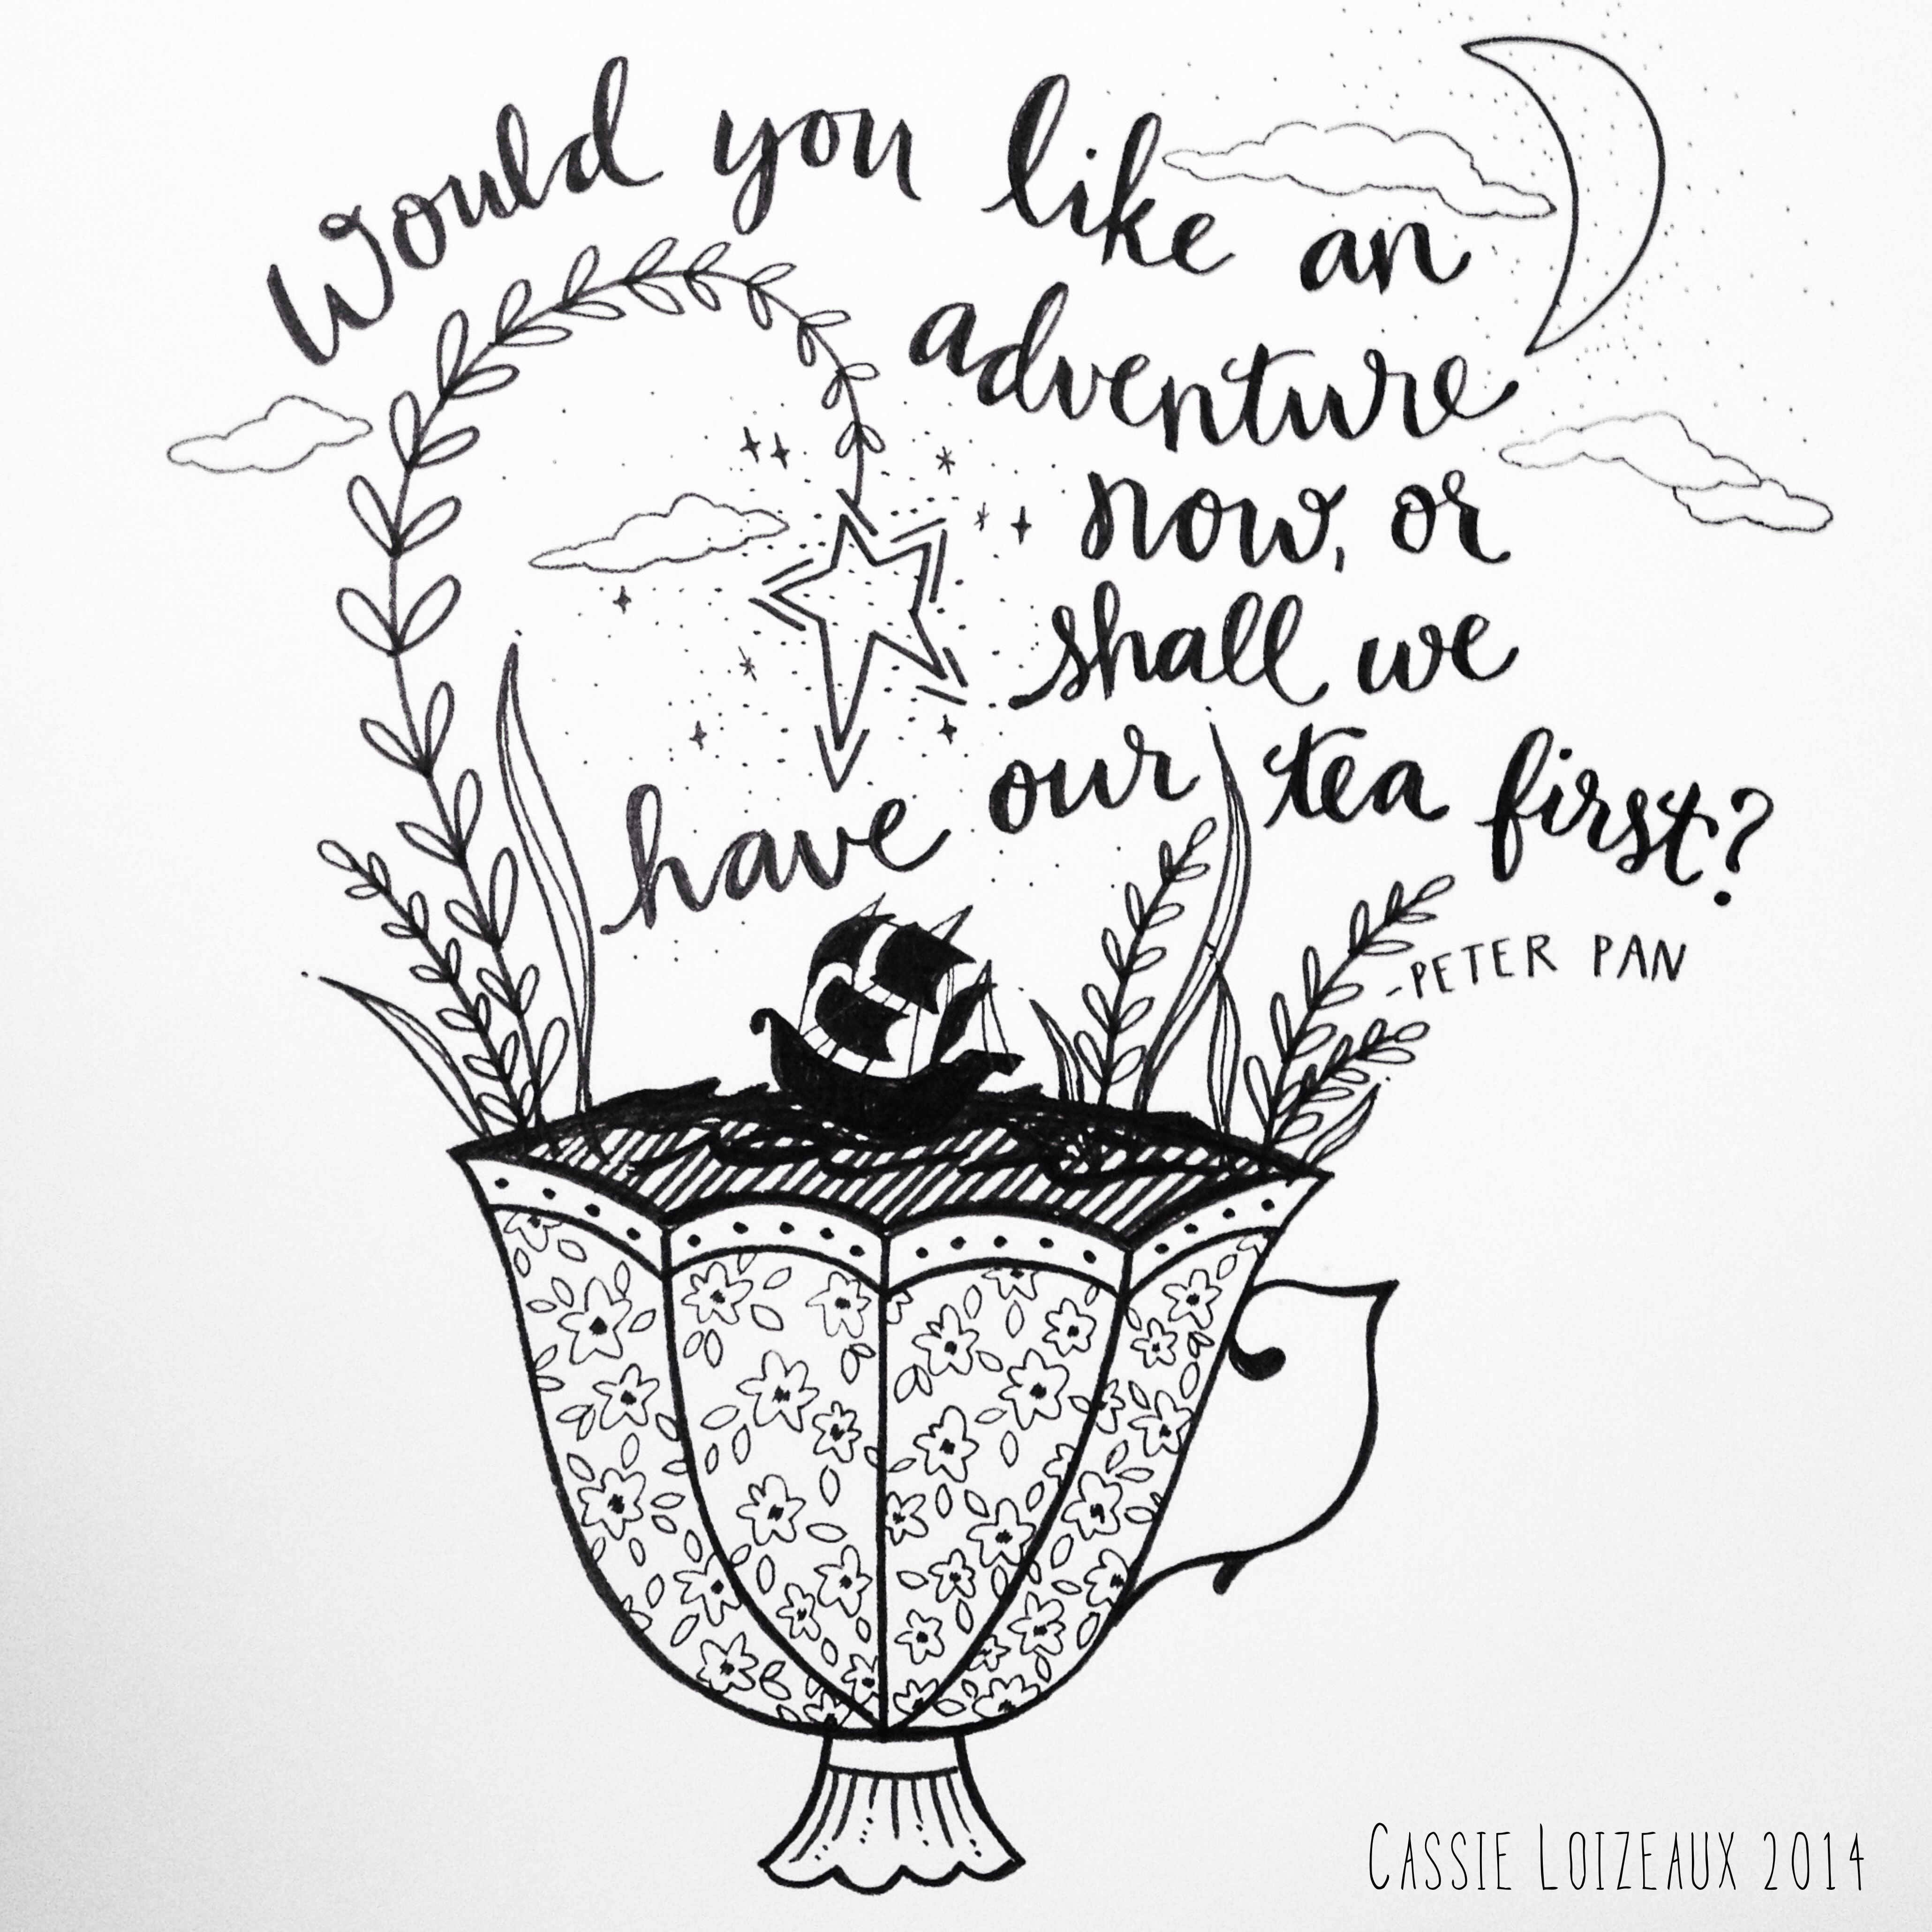 Adventure Now. Day 104 of yearlong sketchbook project. Cassie Loizeaux